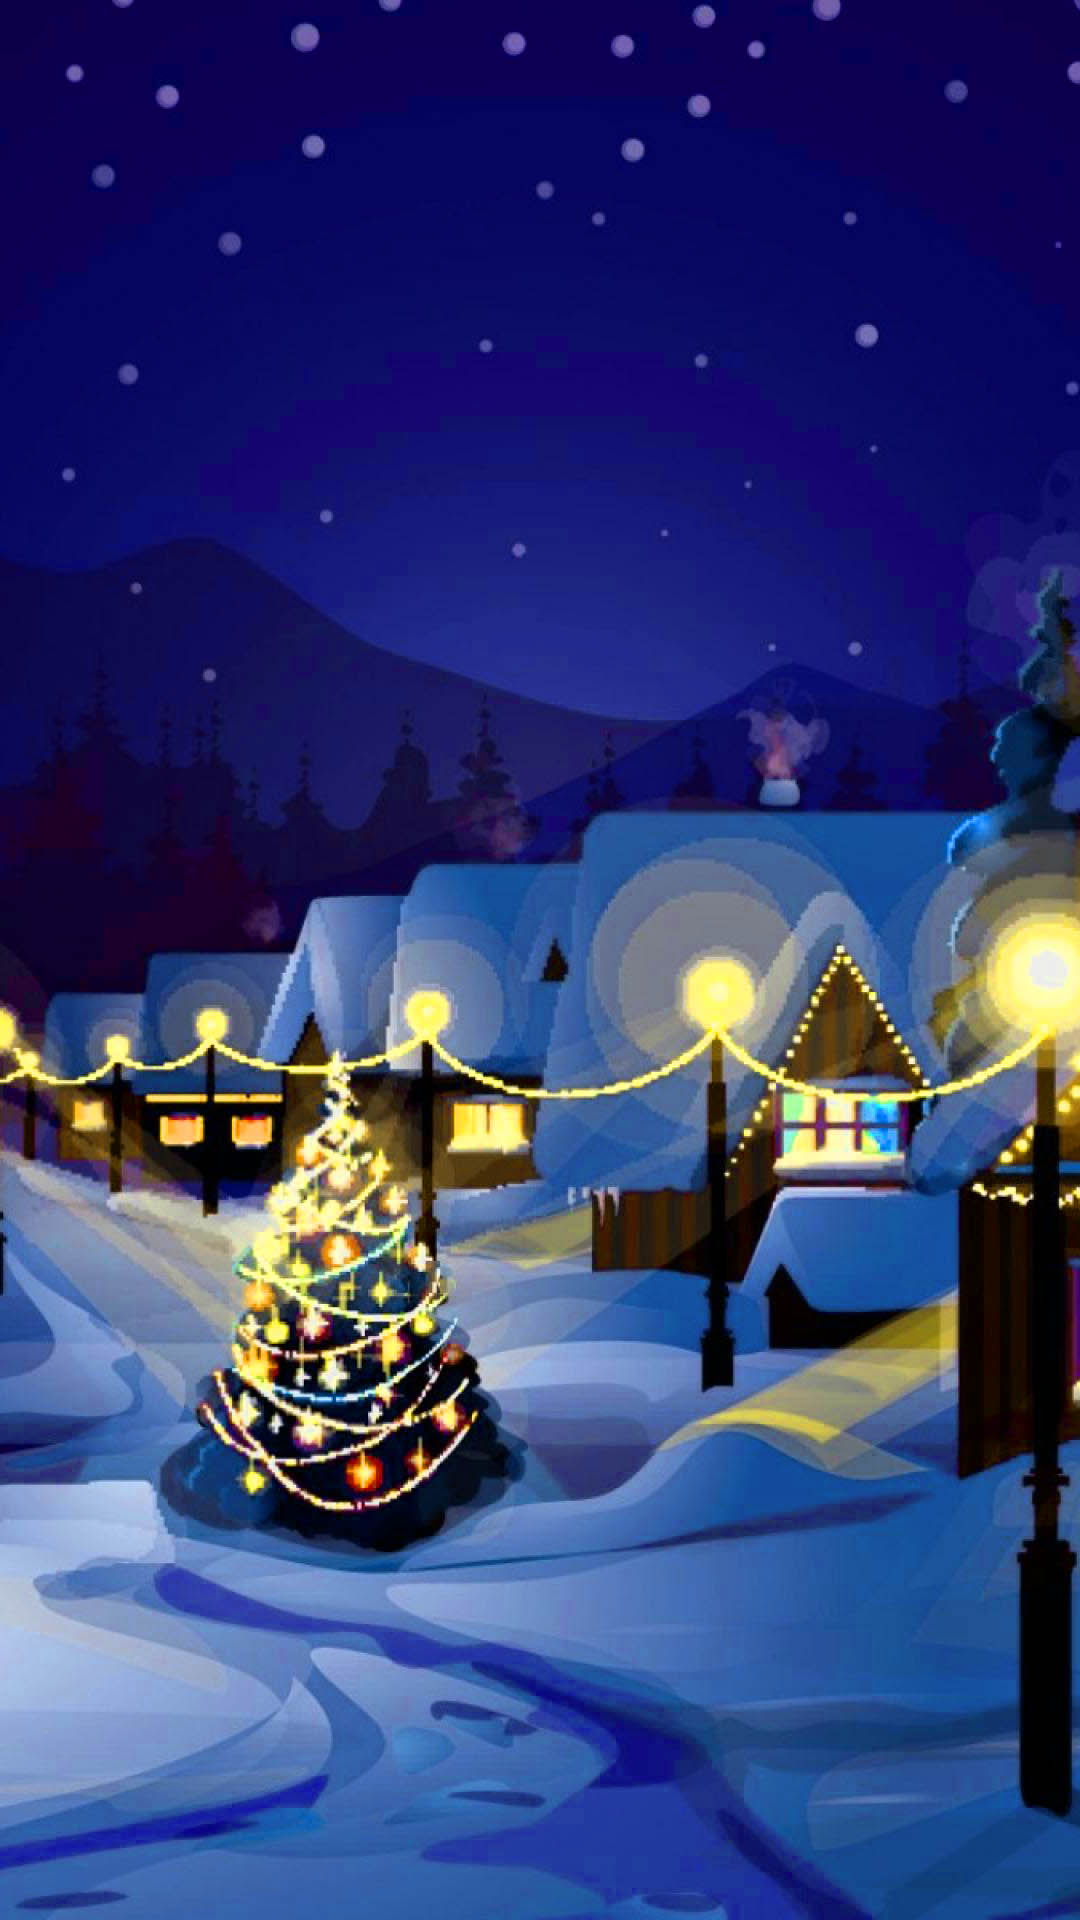 Winter Christmas Wallpaper Kolpaper Awesome Free Hd Wallpapers Find your perfect wallpaper and download the image or photo for free. winter christmas wallpaper kolpaper